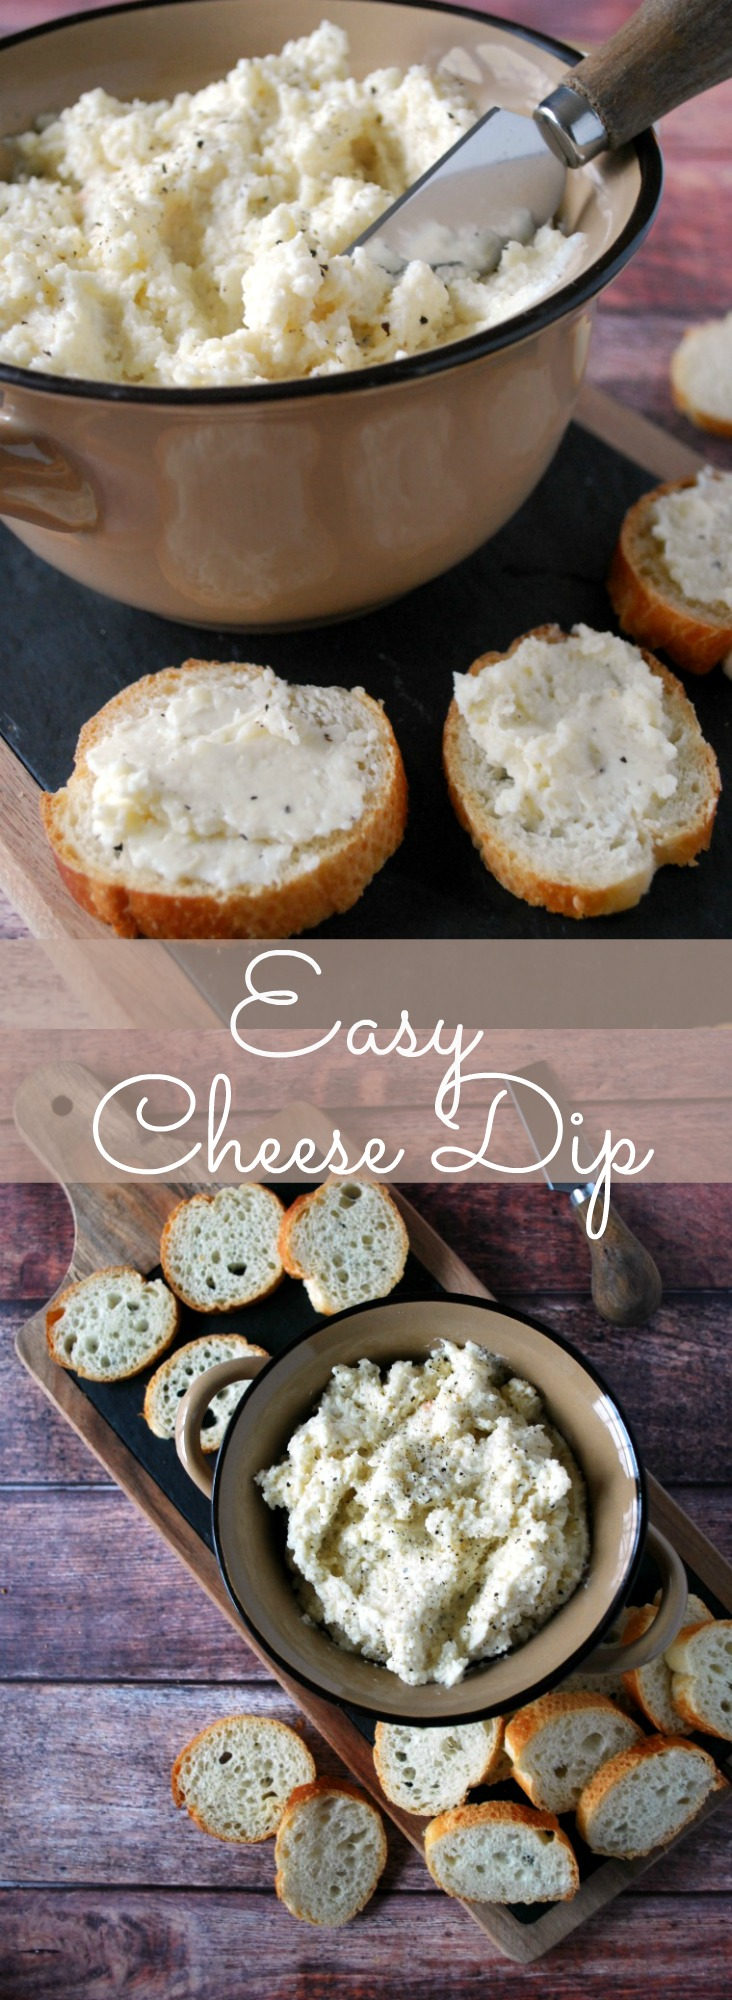 This easy cheese dip is perfect for quick and stress-free entertaining. Its a creamy and dreamy dip also known as